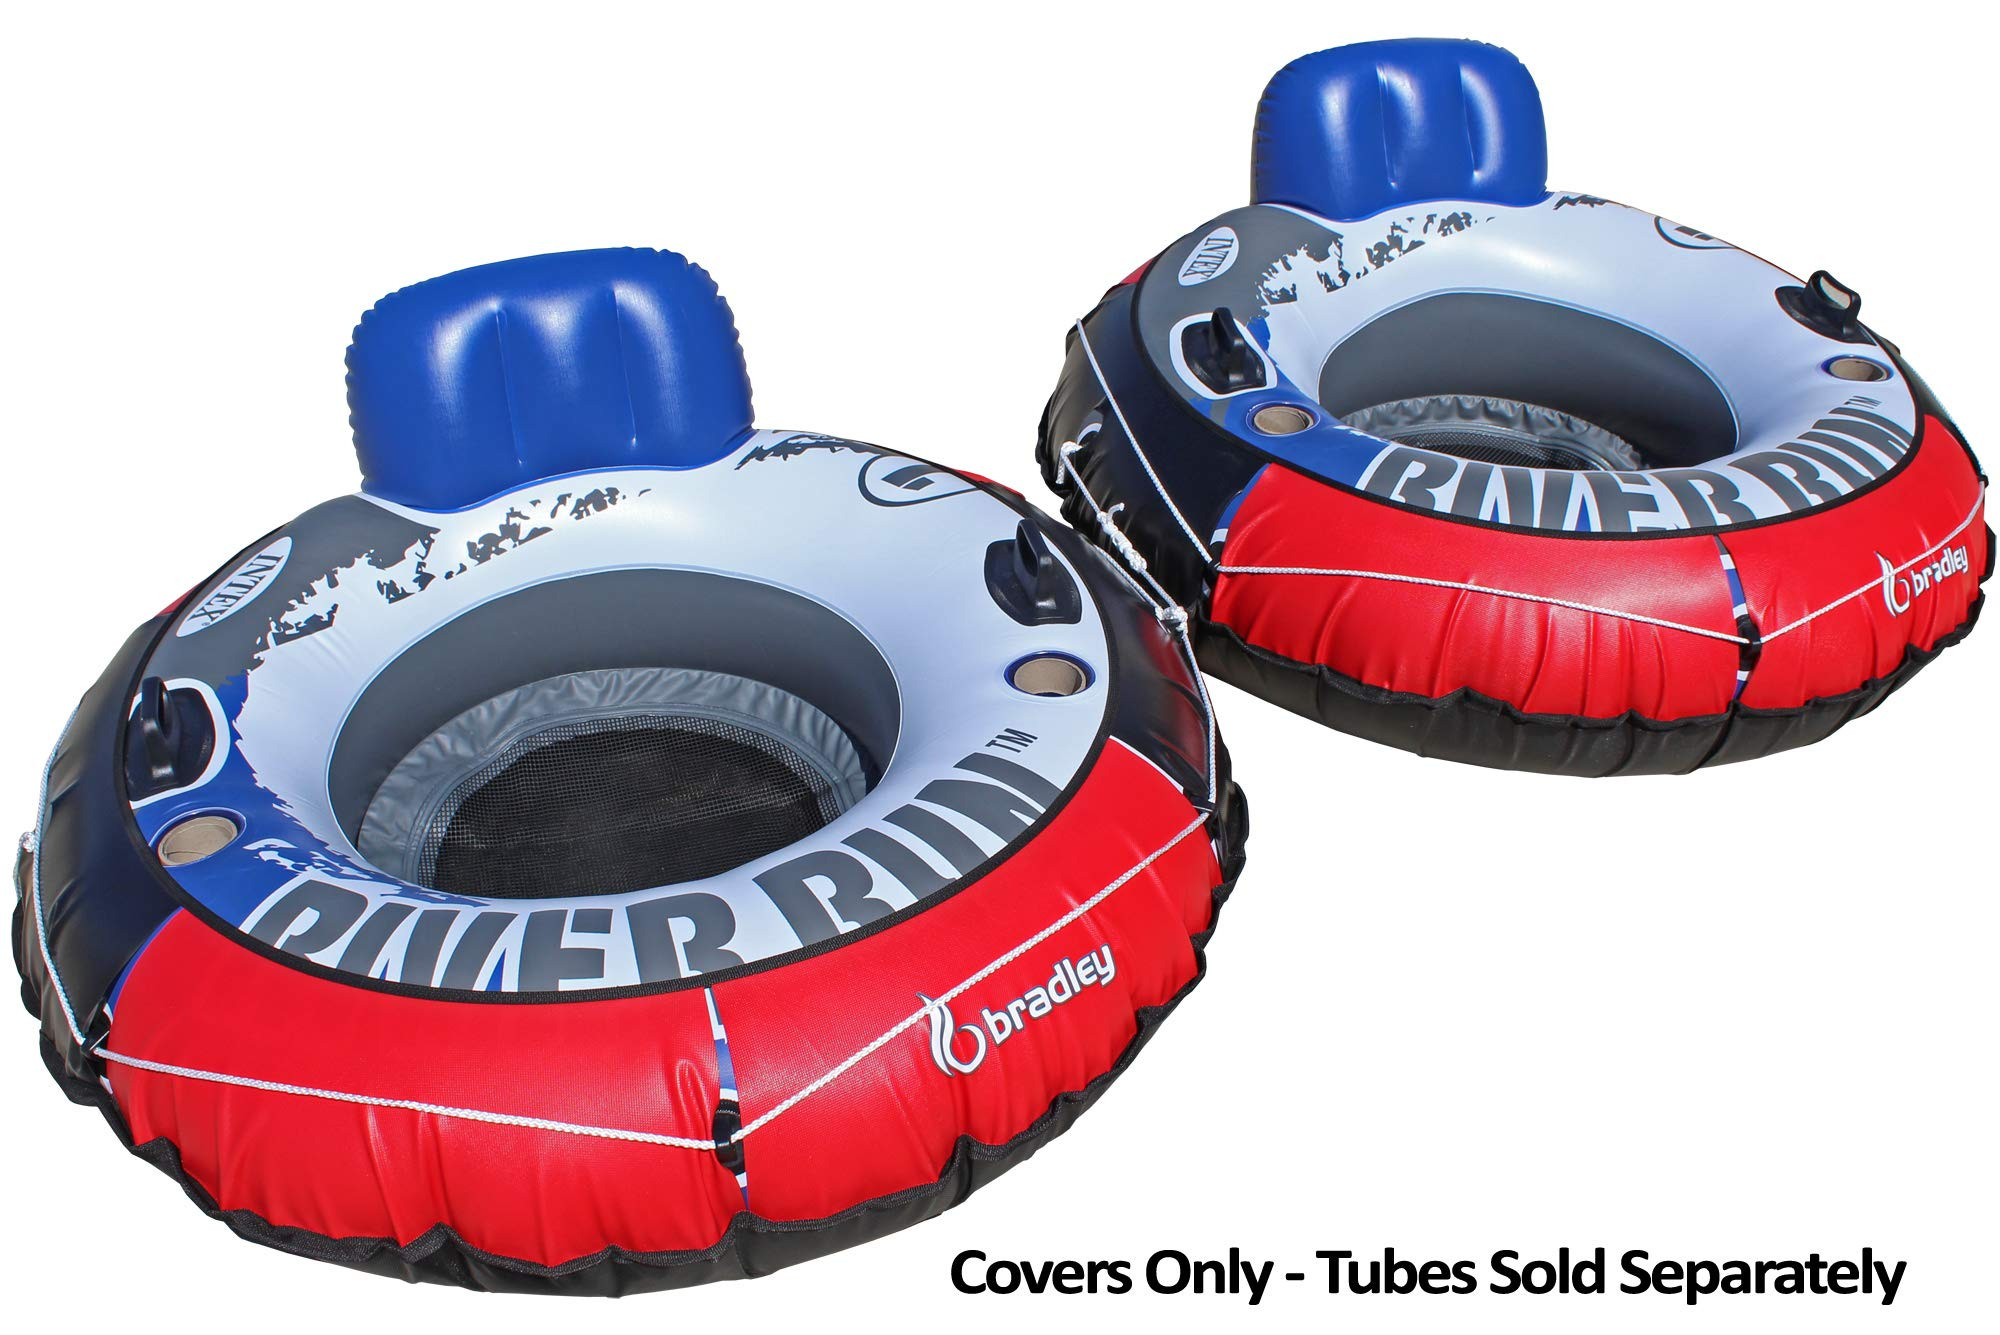 Bradley Heavy Duty River Tube Cover (2 Pack) | Compatible with Intex River Run, Inflatable River Tubes by Bradley